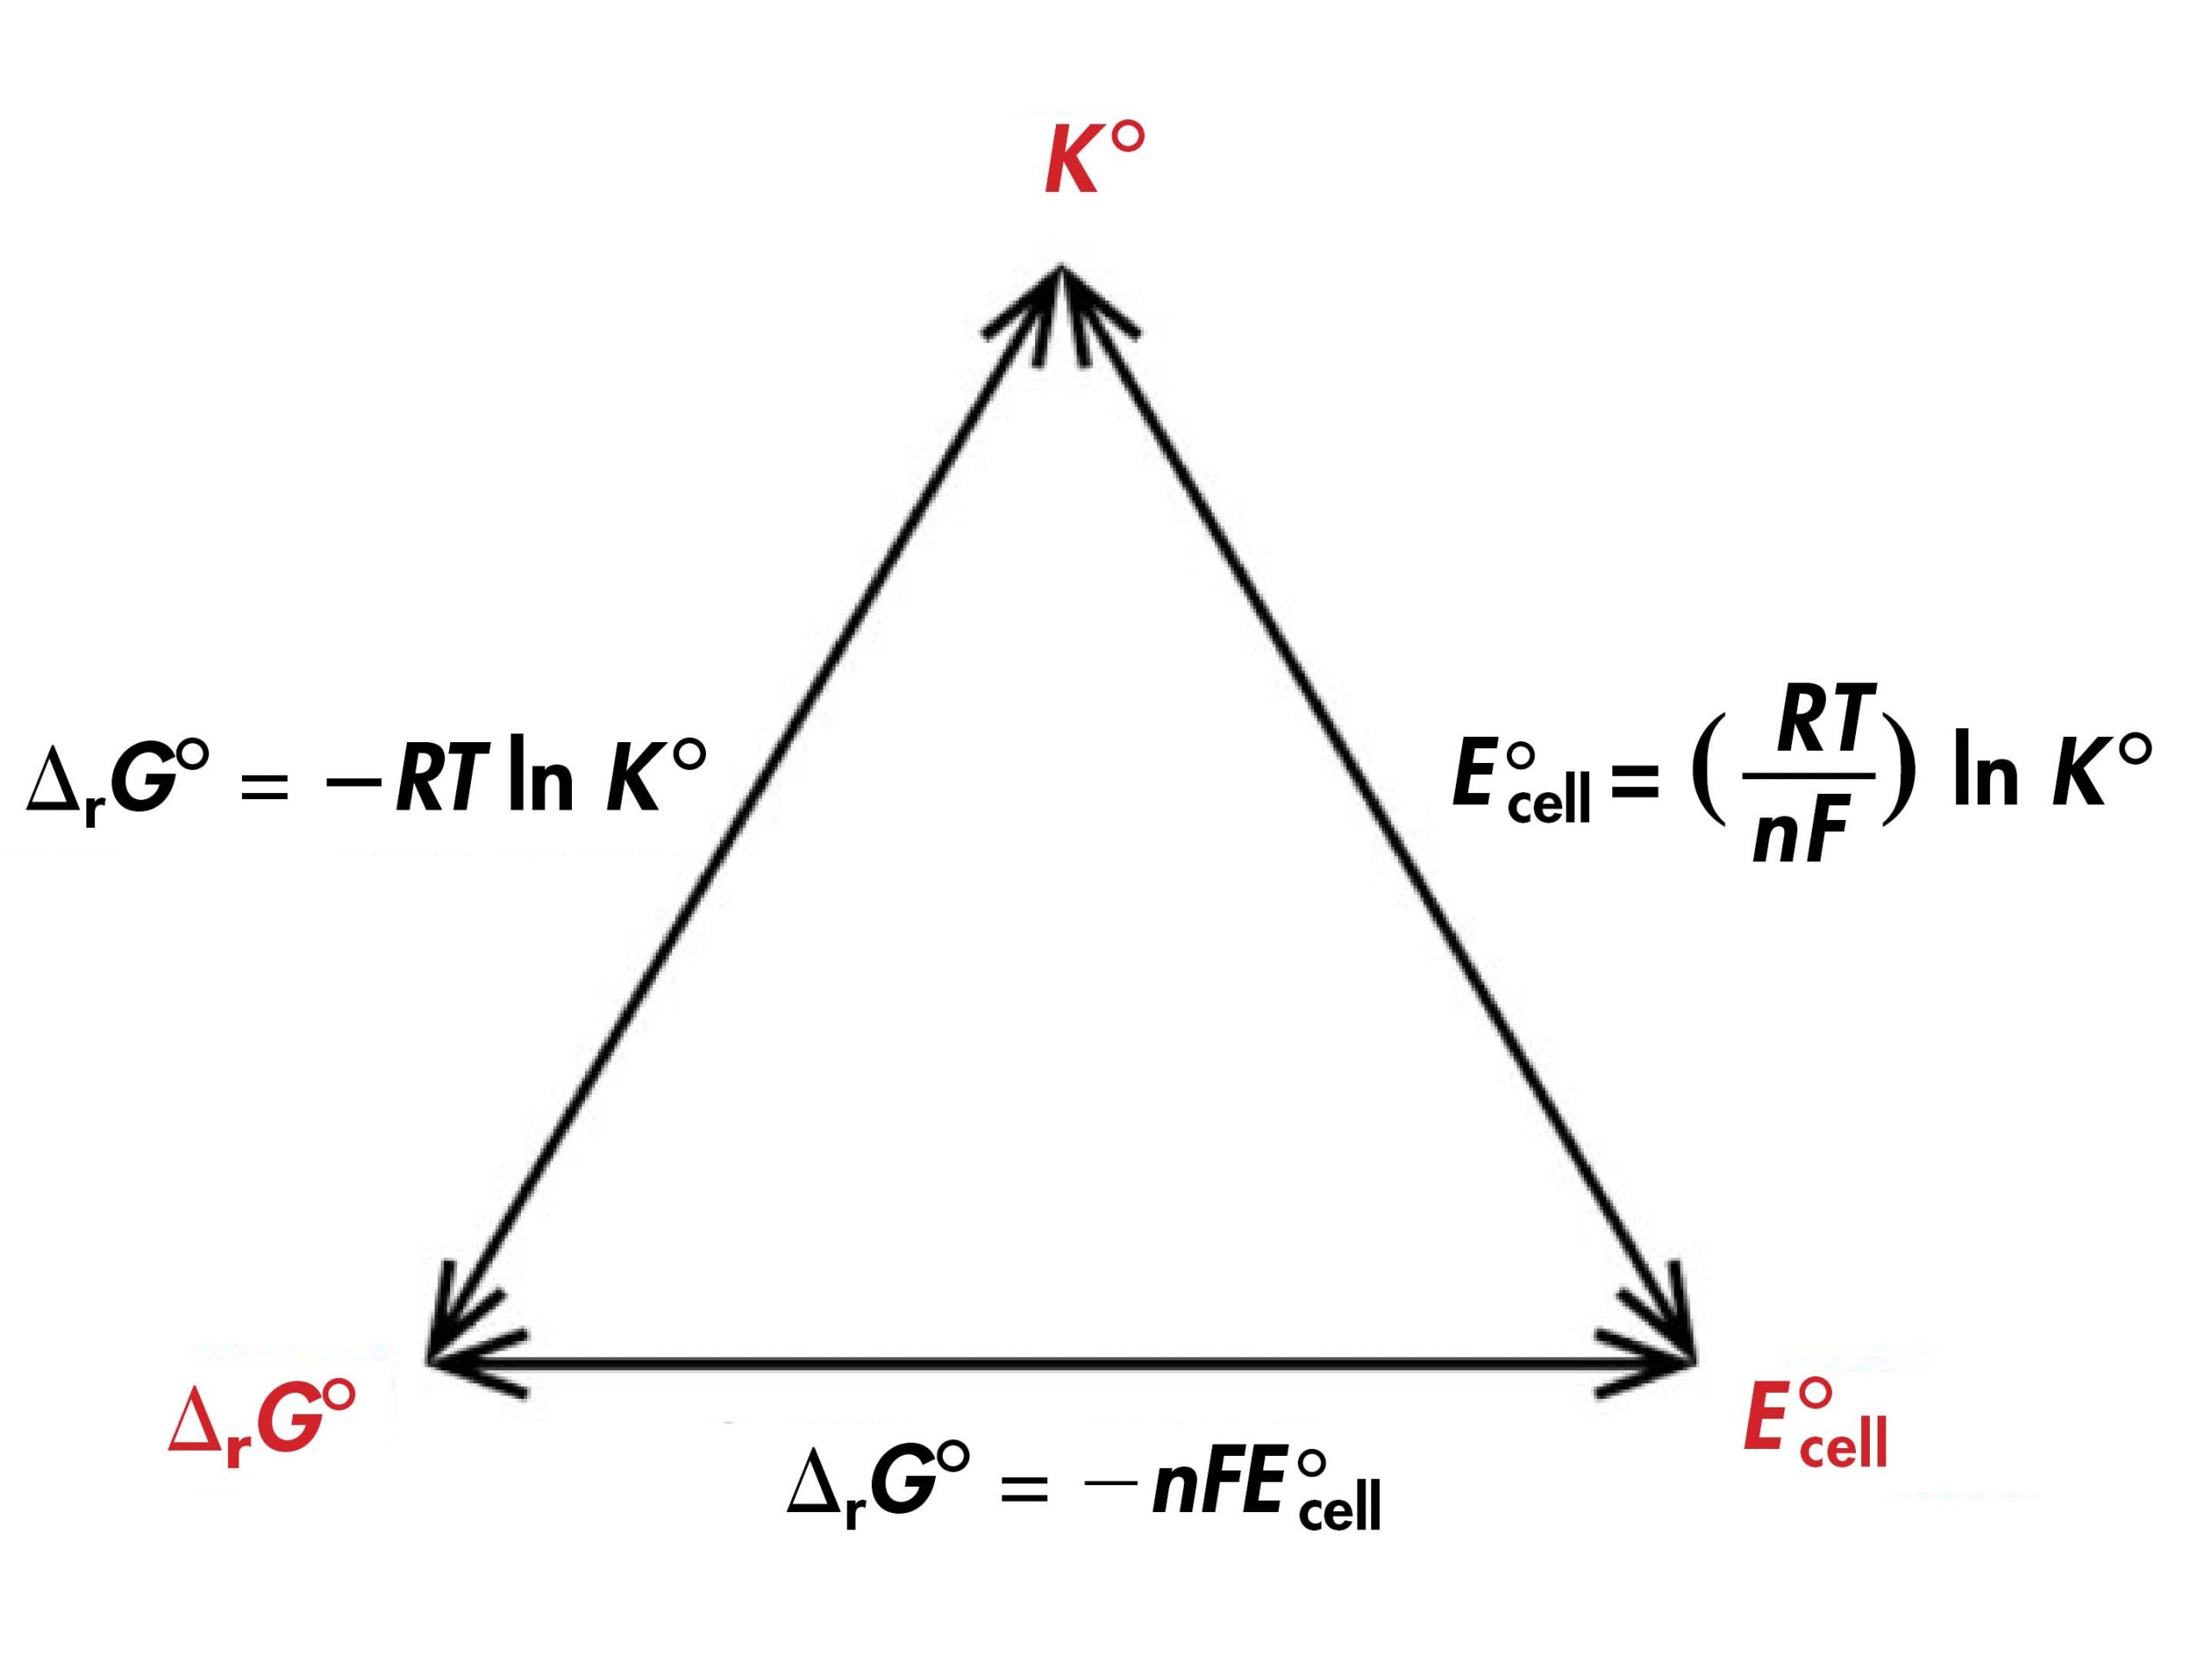 """A diagram is shown that involves three double headed arrows positioned in the shape of an equilateral triangle. The vertices are labeled in red. The top vertex is labeled """"K standard."""" The vertex at the lower left is labeled """"delta G standard"""" The vertex at the lower right is labeled """"E standard subscript cell."""" The right side of the triangle is labeled """"E superscript degree symbol subscript cell equals ( R T divided by n F ) l n K superscript degree symbol."""" The lower side of the triangle is labeled """"delta G superscript degree symbol equals negative n F E superscript degree symbol subscript cell."""" The left side of the triangle is labeled """"delta G superscript degree symbol equals negative R T l n K superscript degree symbol."""""""